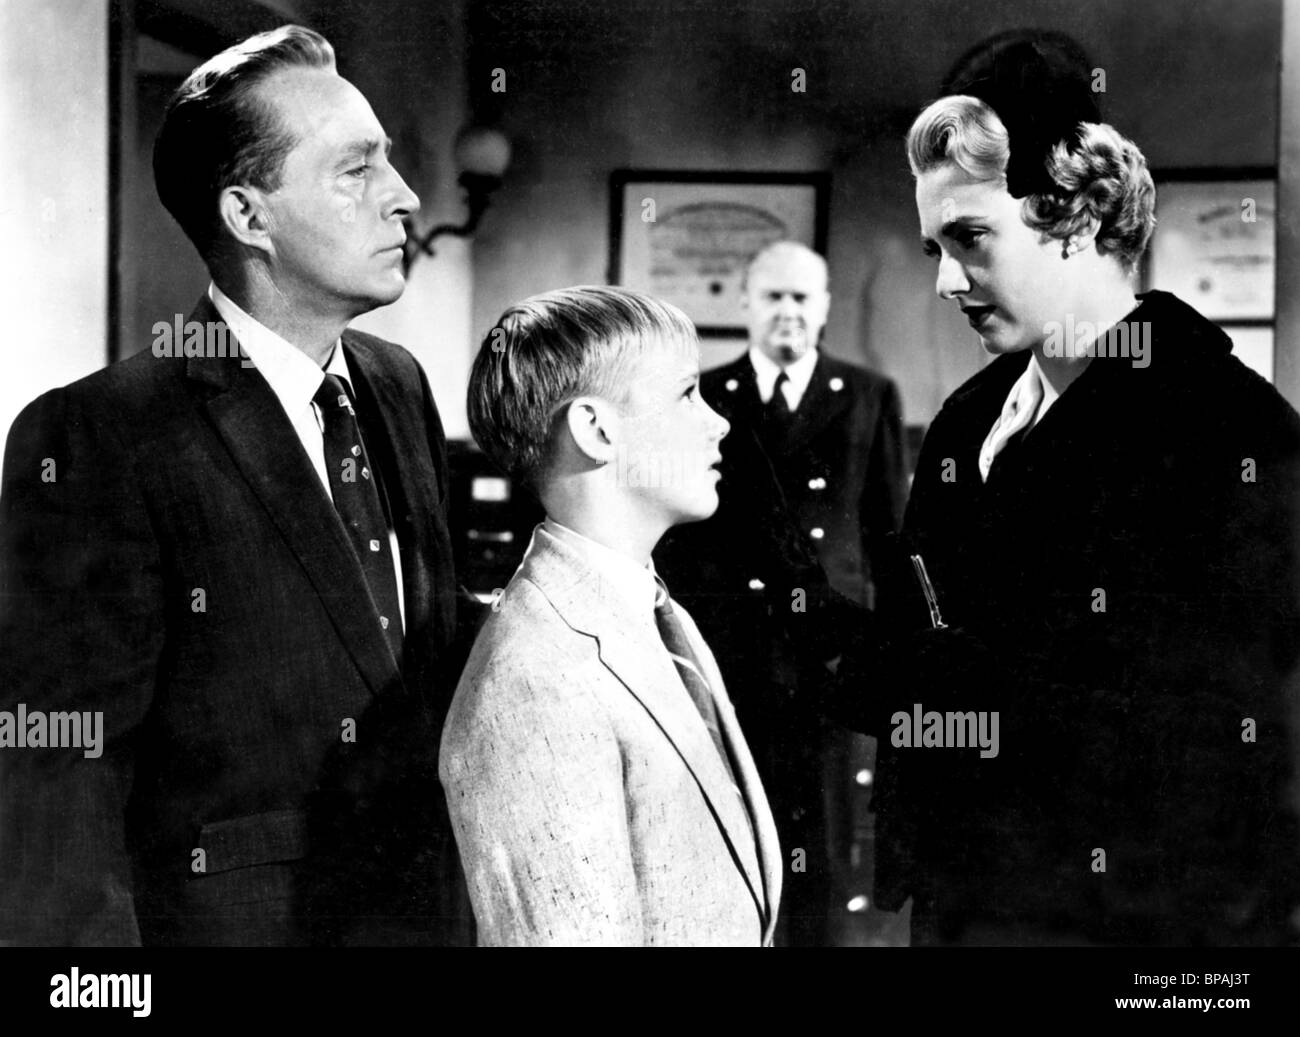 BING CROSBY, MALCOLM BRODRICK, INGER STEVENS, MAN ON FIRE, 1957 - Stock Image